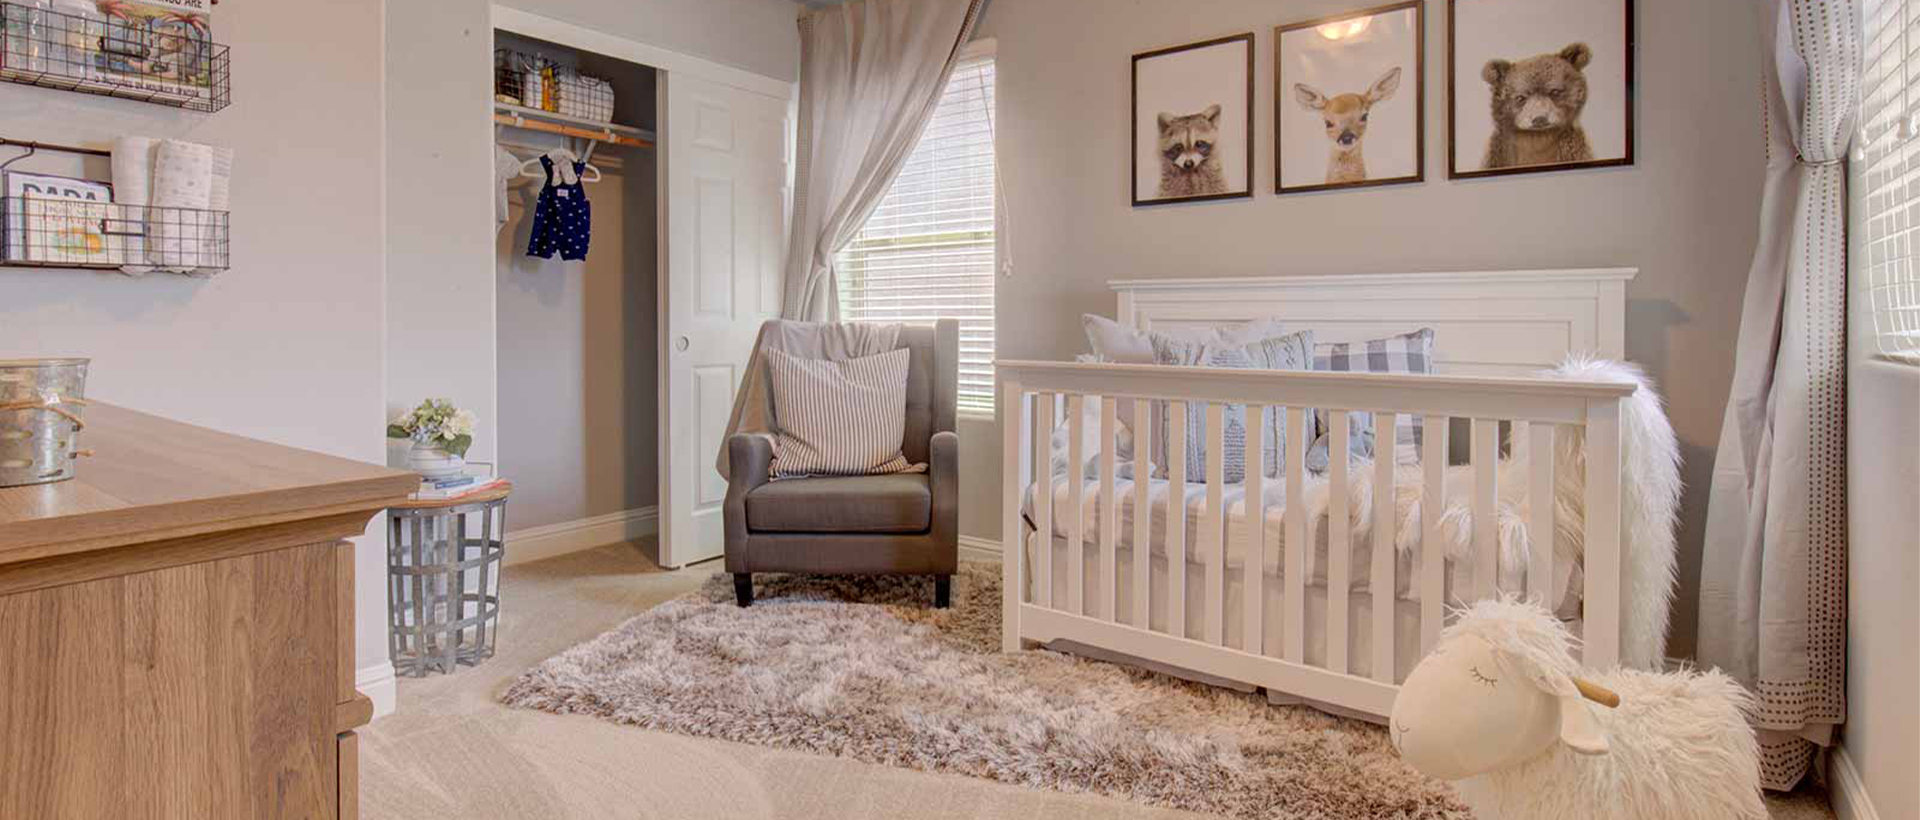 6 Tips to Create an Eco-Friendly Nursery